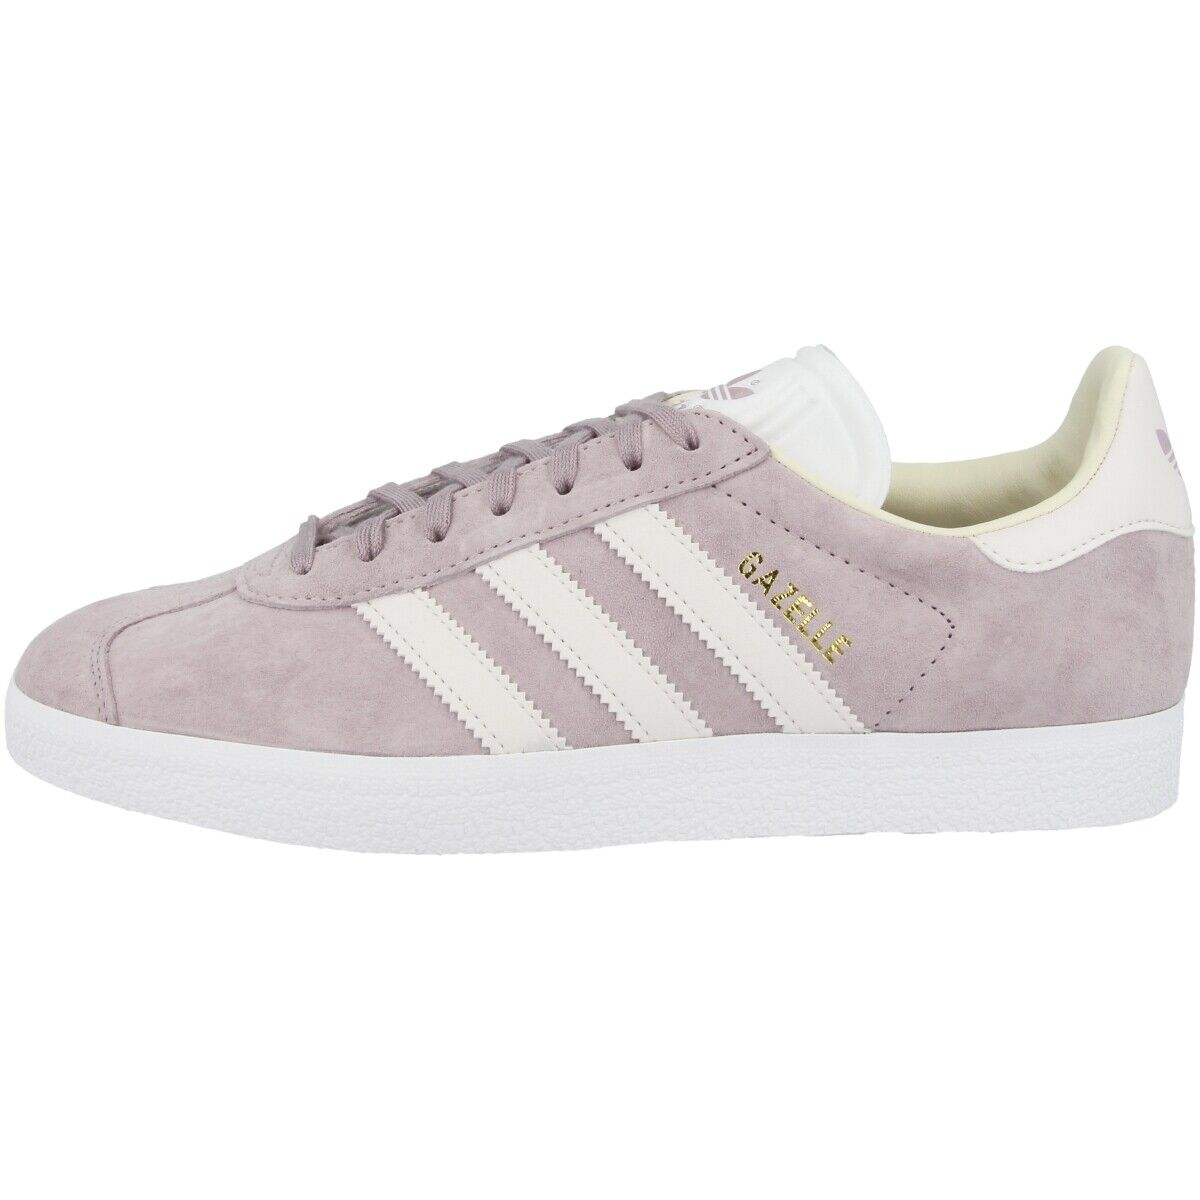 Adidas GAZELLE Women shoes Womens Originals Casual Sneaker Soft Vision CG6066